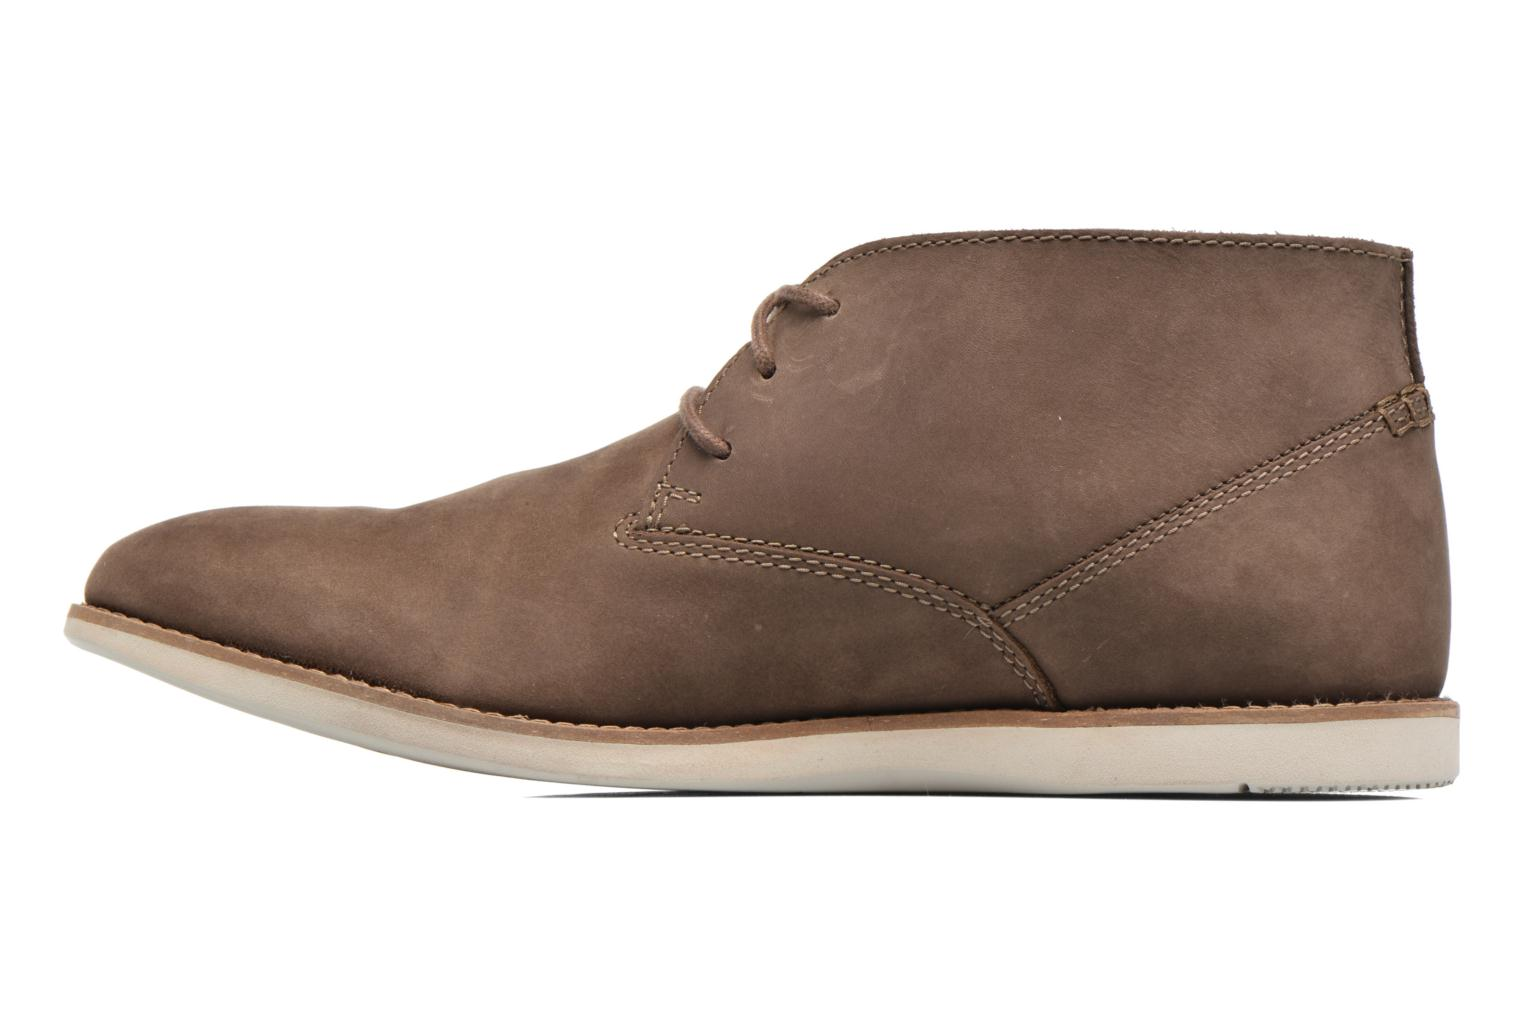 Franson Top Brown Nubuck